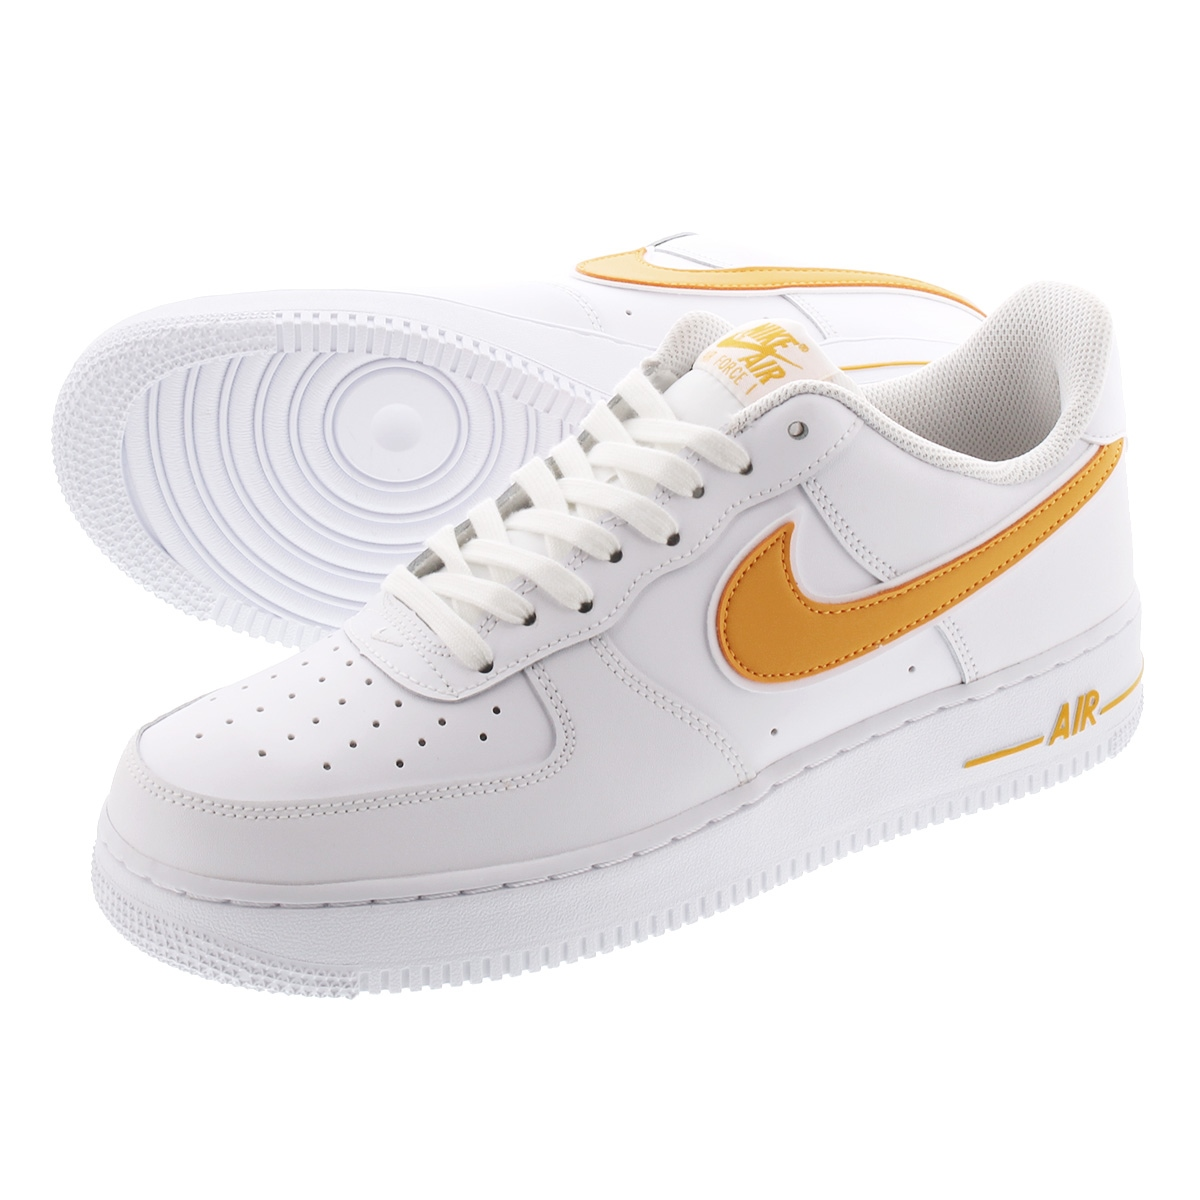 NIKE AIR FORCE 1 '07 Nike air force 1 '07 WHITEUNIVERSITY GOLD ao2423 105